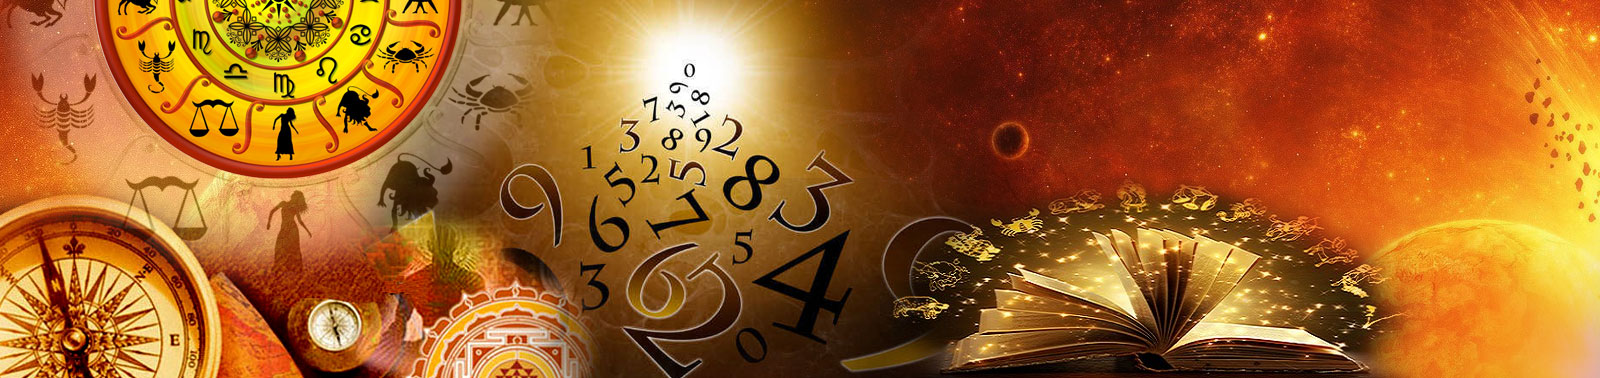 Consult for your life's problems from our renowend astrologers